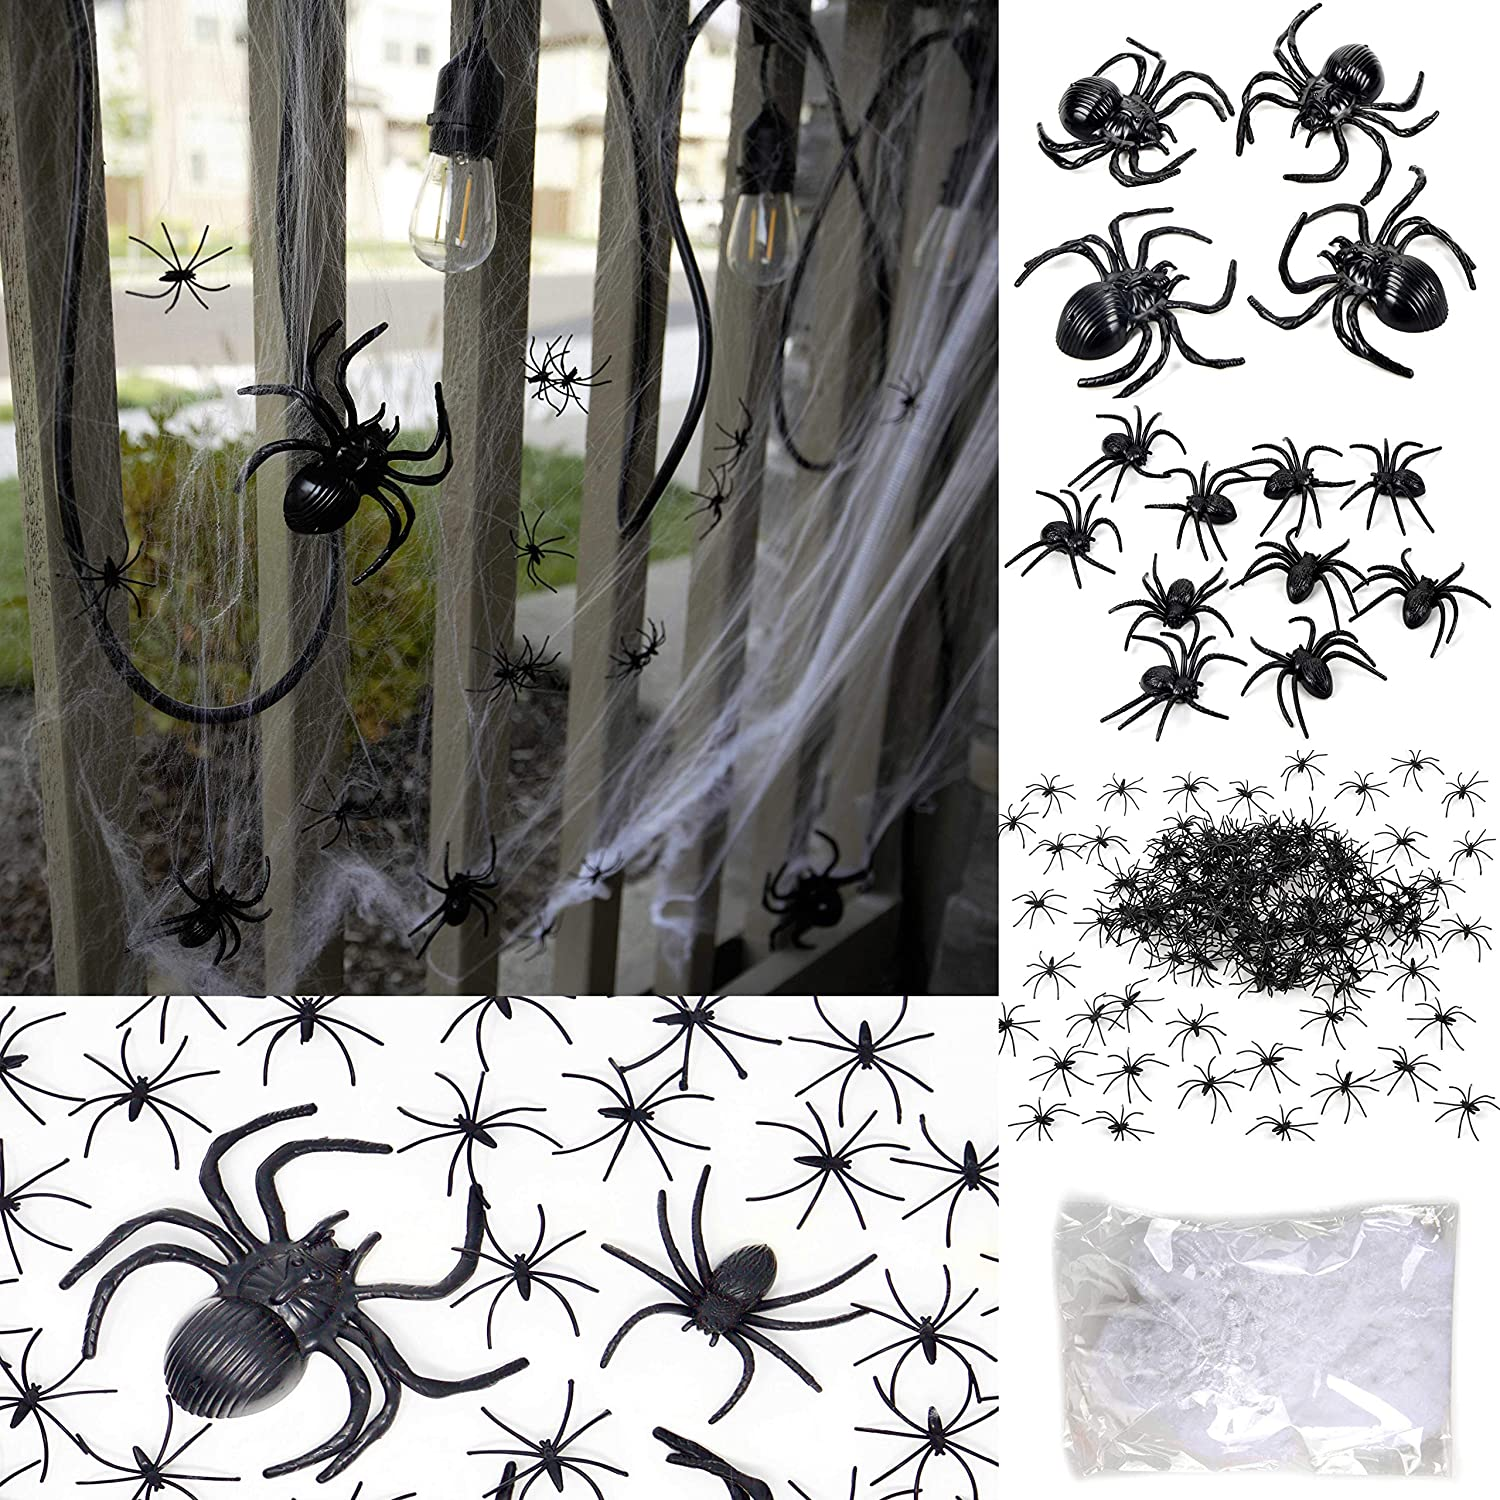 Youngever 175 Pcs Halloween Spider Decorations with 800 SQ Feet Web - 160pcs Small Spider & 10pcs Medium Spider & 4pcs Big Spider & 1pcs Spider Web Decorations - Halloween Party Favor